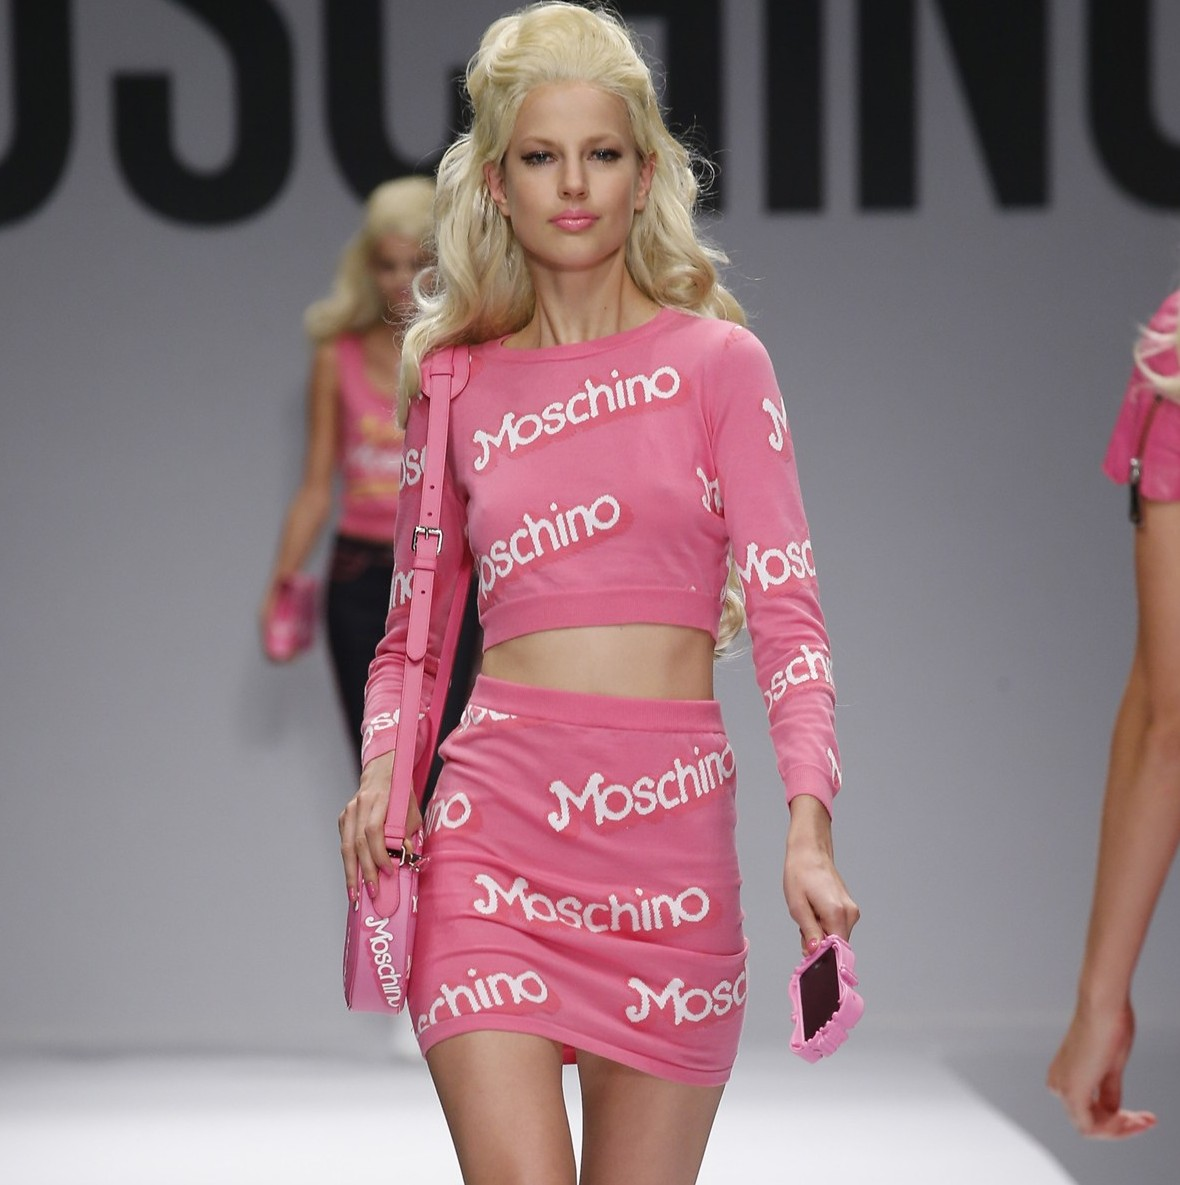 The Moschino Collection Fun!